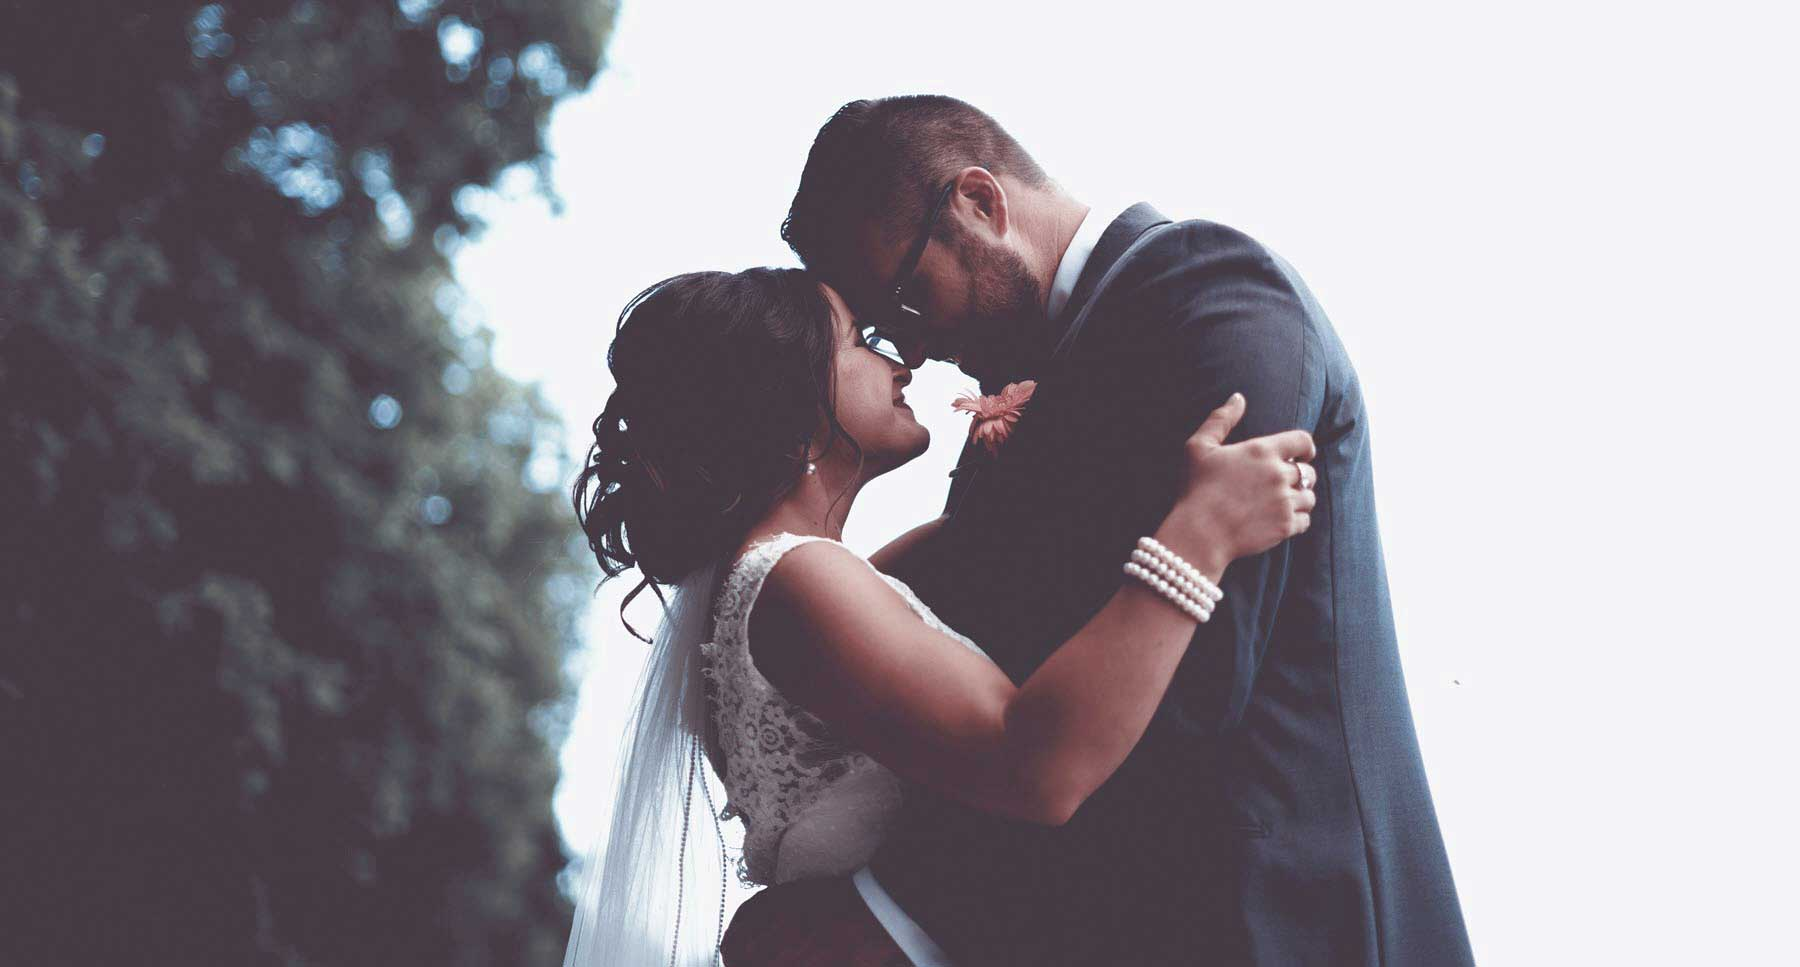 woman-and-man-on-wedding-day-thehopeline-ready-to-get-married-ready-for-marriage-should